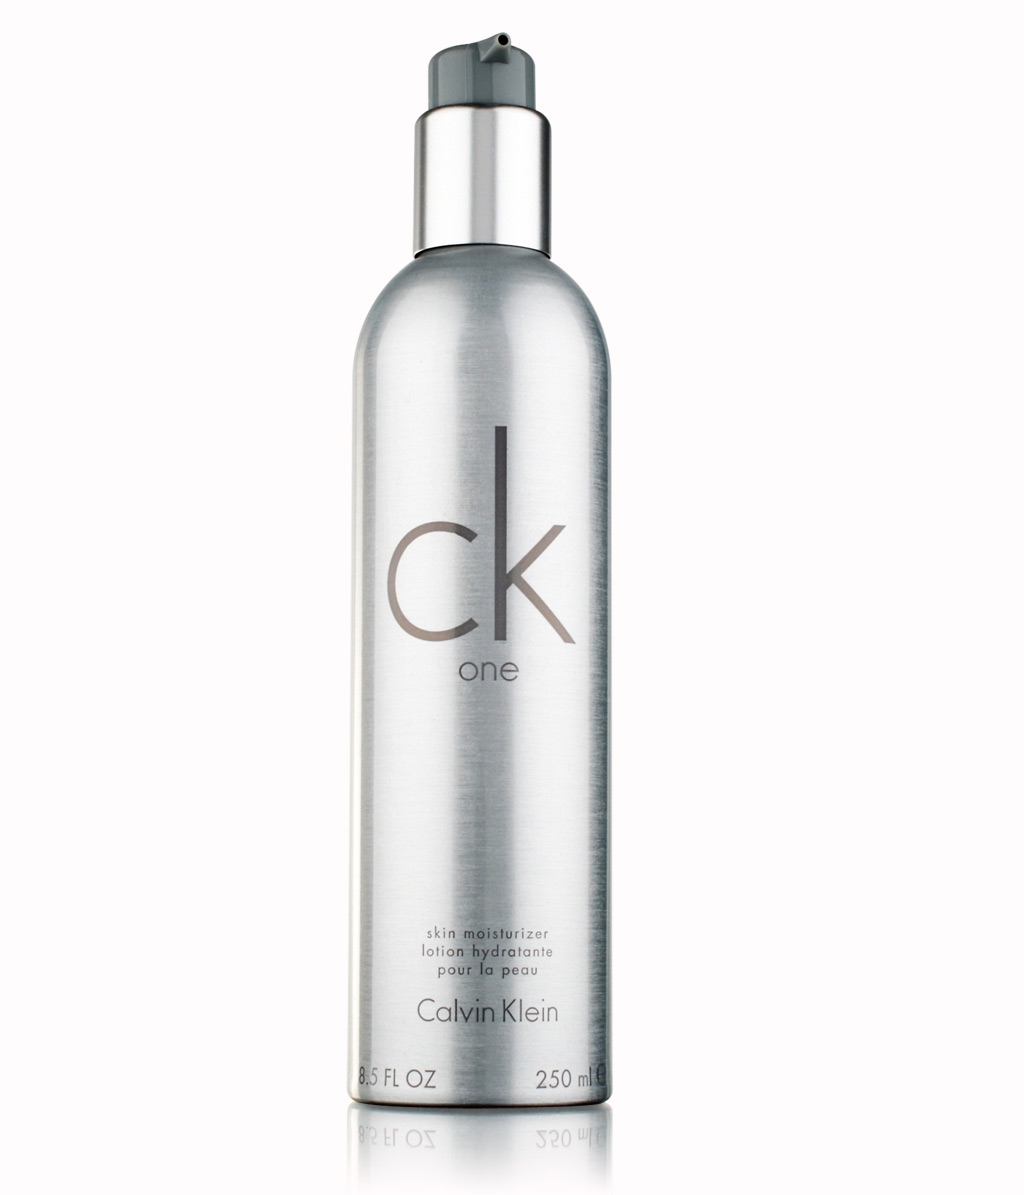 CK ONE BODY LOTION HIDRATANTE 250 ML